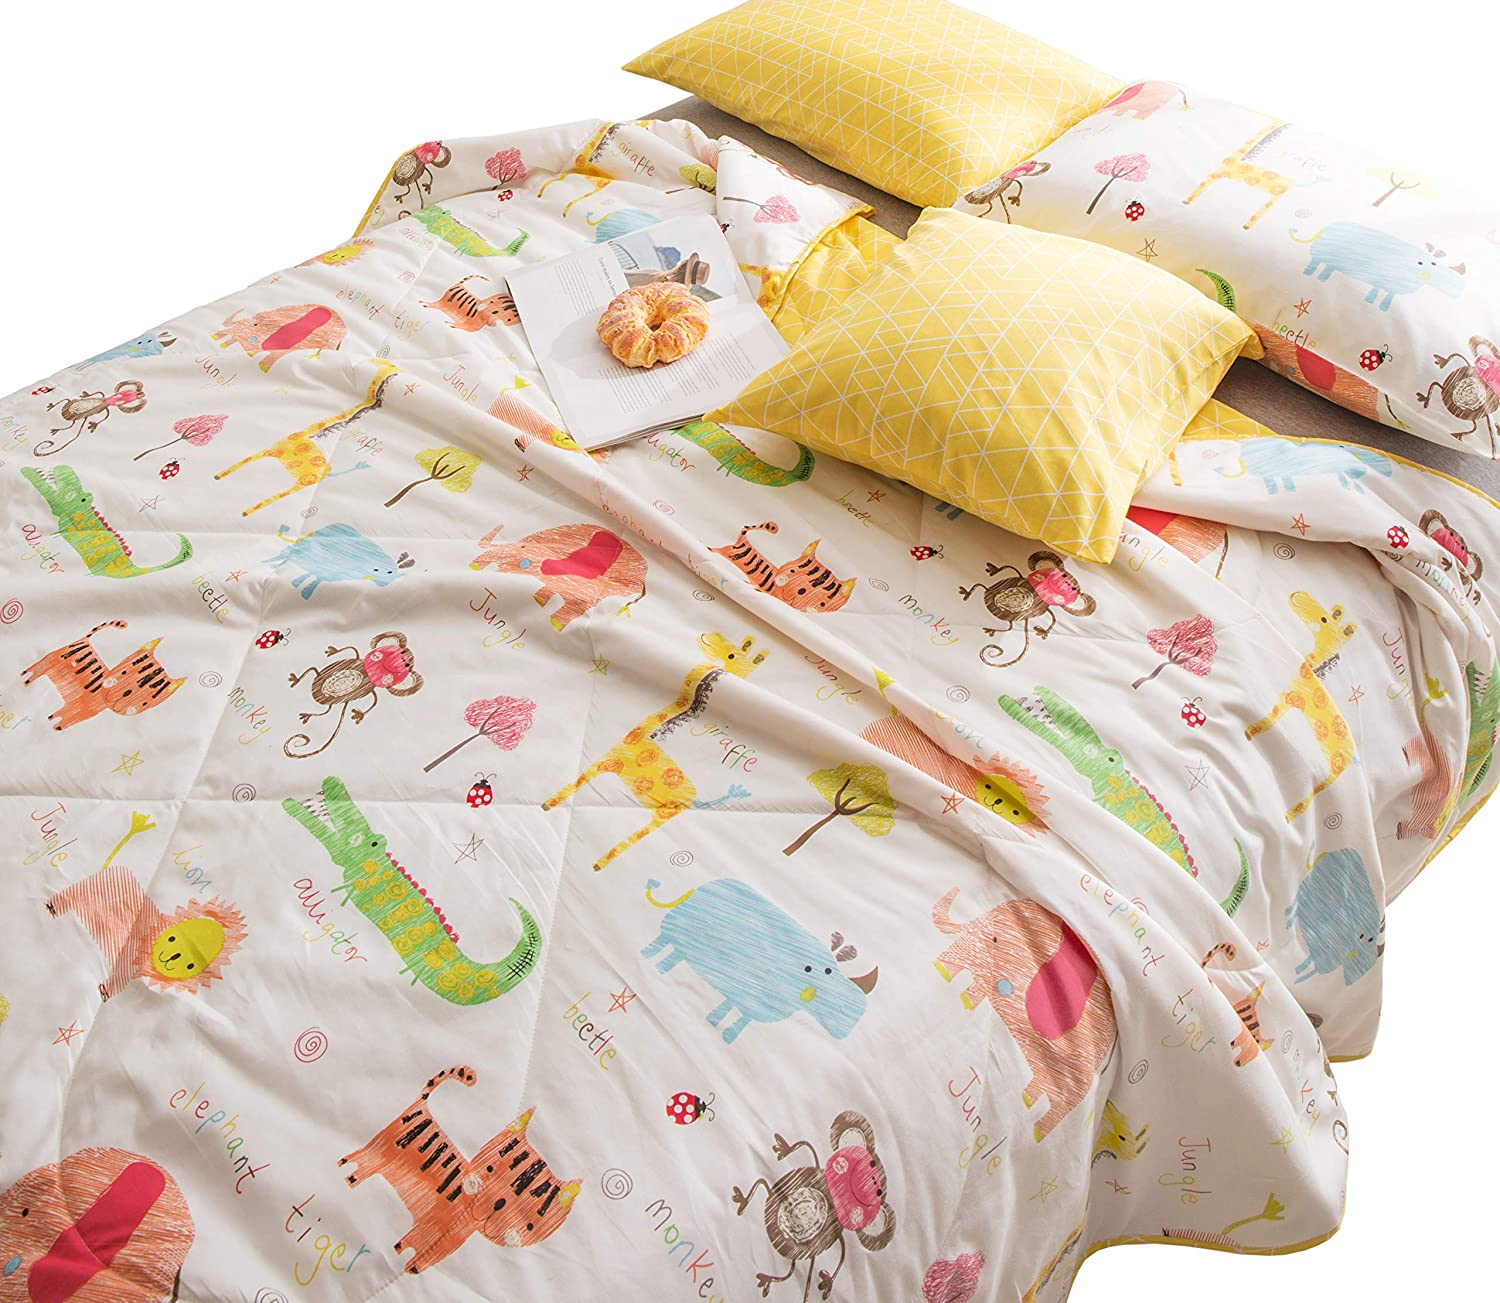 J-pinno Jungle Tiger Elephant Monkey Printed Quilted Comforter Twin Blanket for Kids Bedding (Twin, 22)